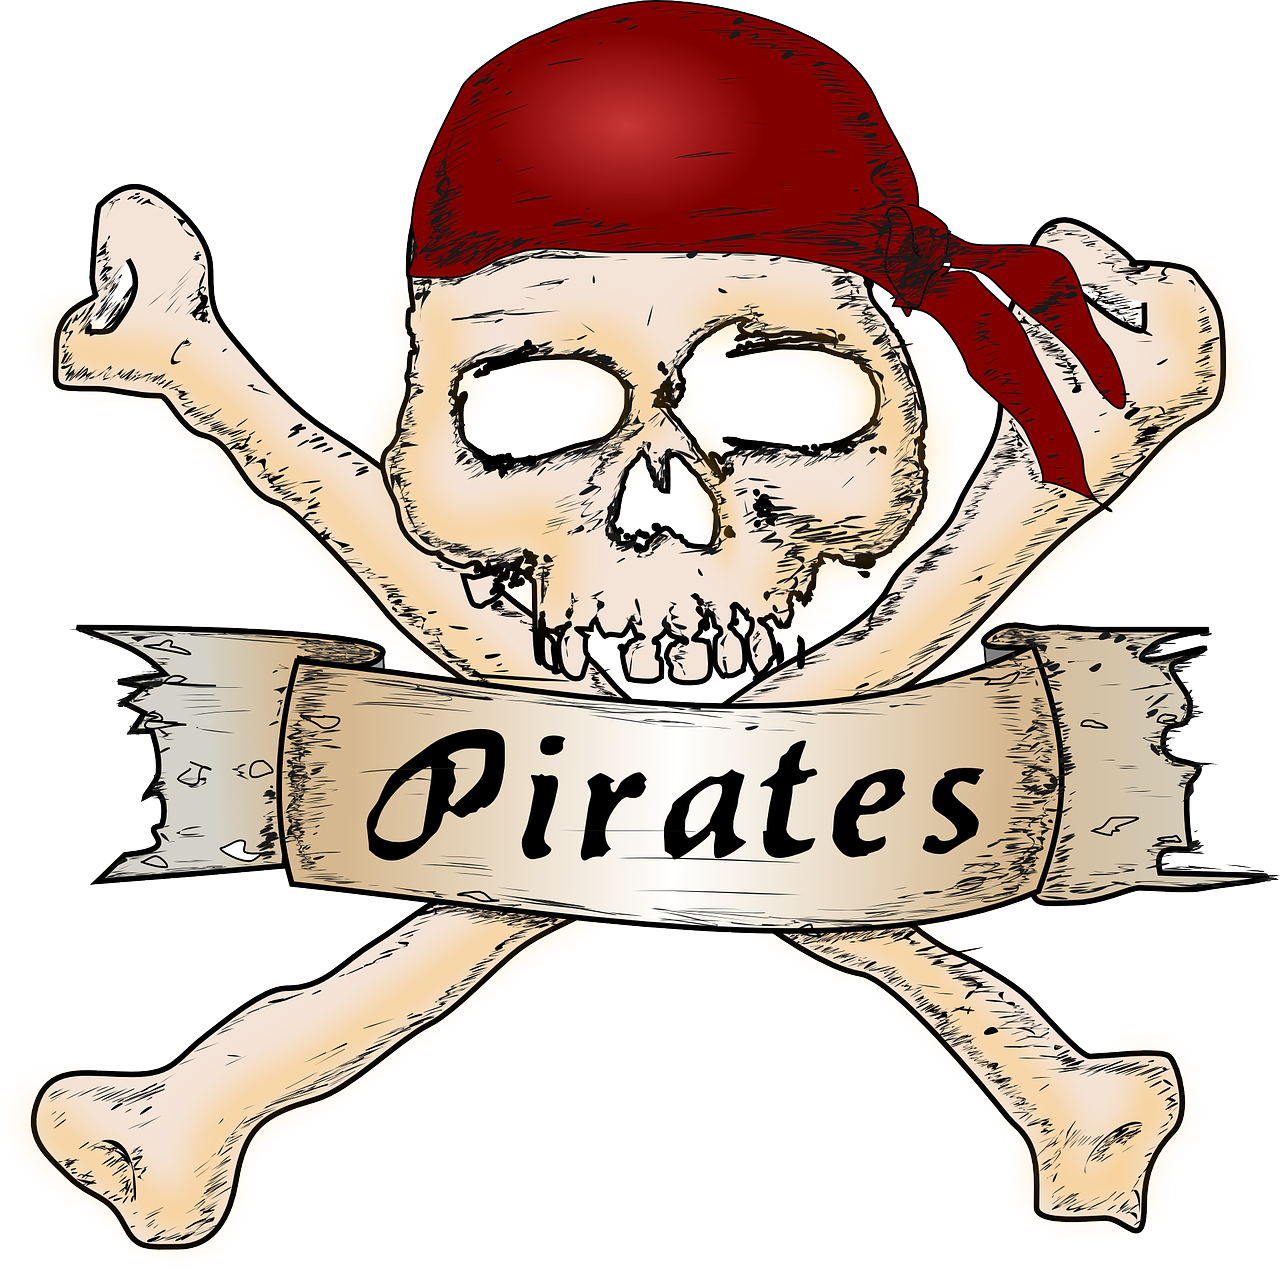 Playing a pirate can be fun. Being a pirate is stealing.